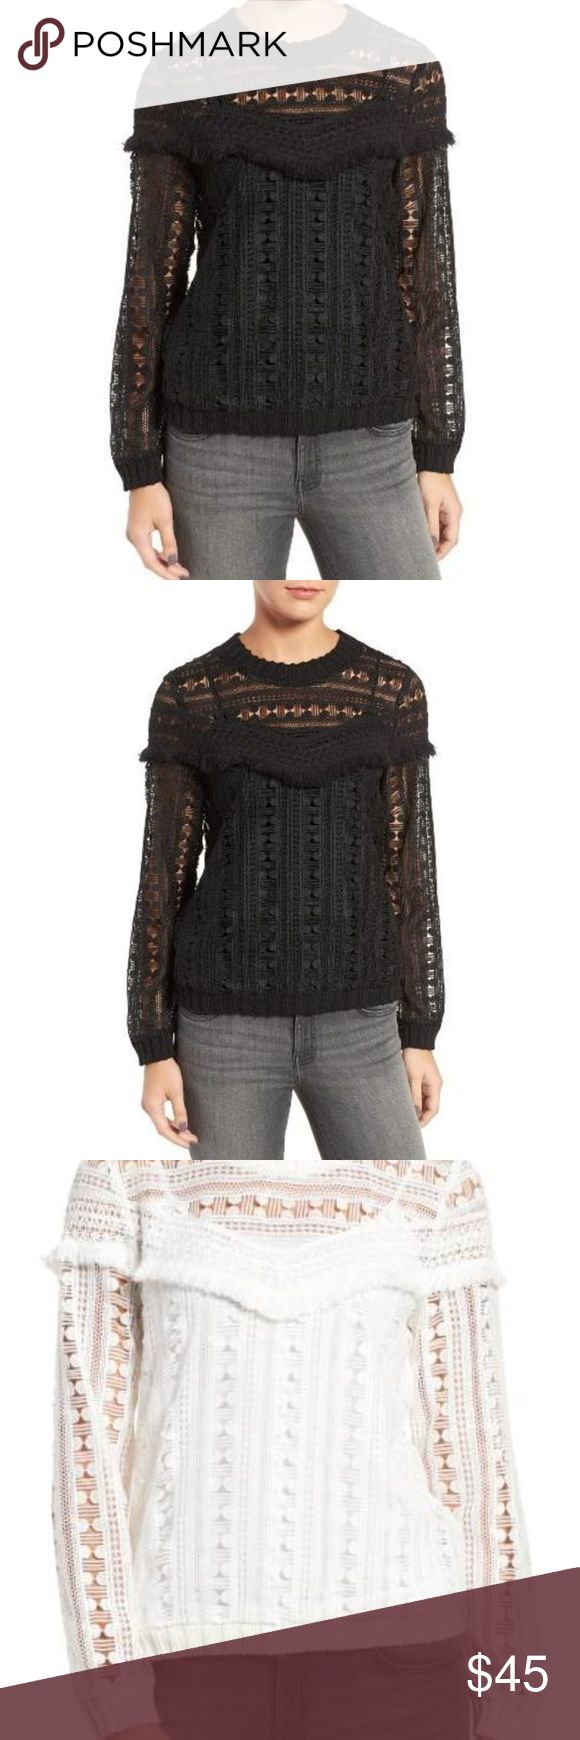 """Trouve Sweater Trouve Fringe Lace Sweater in black. Brand new with tags attached.  Details & Care Show off glimpses of skin in this crocheted lace top with subtle fringe trim for definite feminine appeal. 24"""" length (size Medium) Crewneck Long sleeves with ribbed cuffs Sheer; base layer recommended 100% polyester Hand wash cold, dry flat Imported t.b.d. Item #5260860 Trouve Sweaters"""